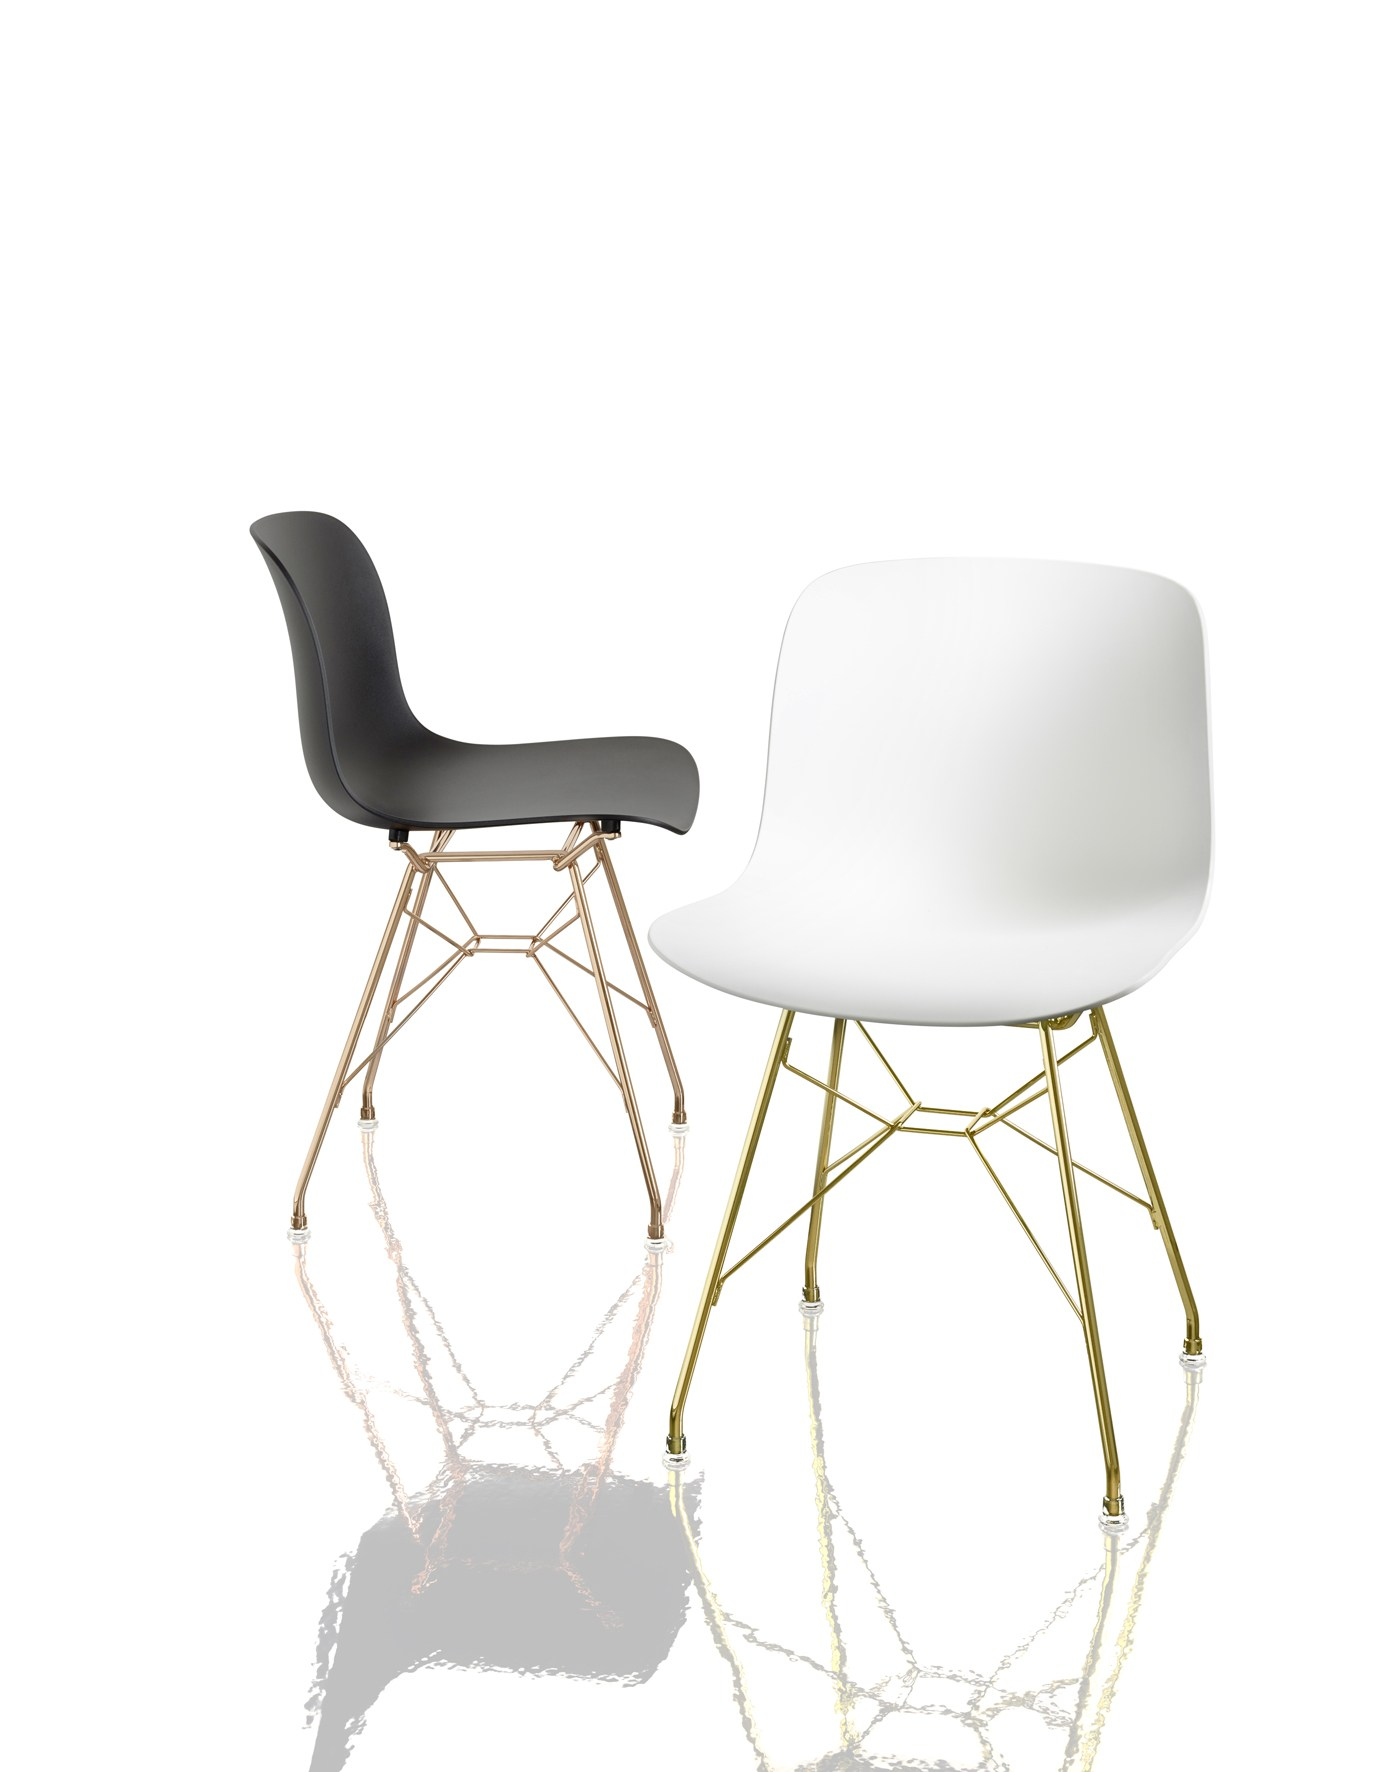 Troy polycarbonate chair by magis design marcel wanders for Magis chair